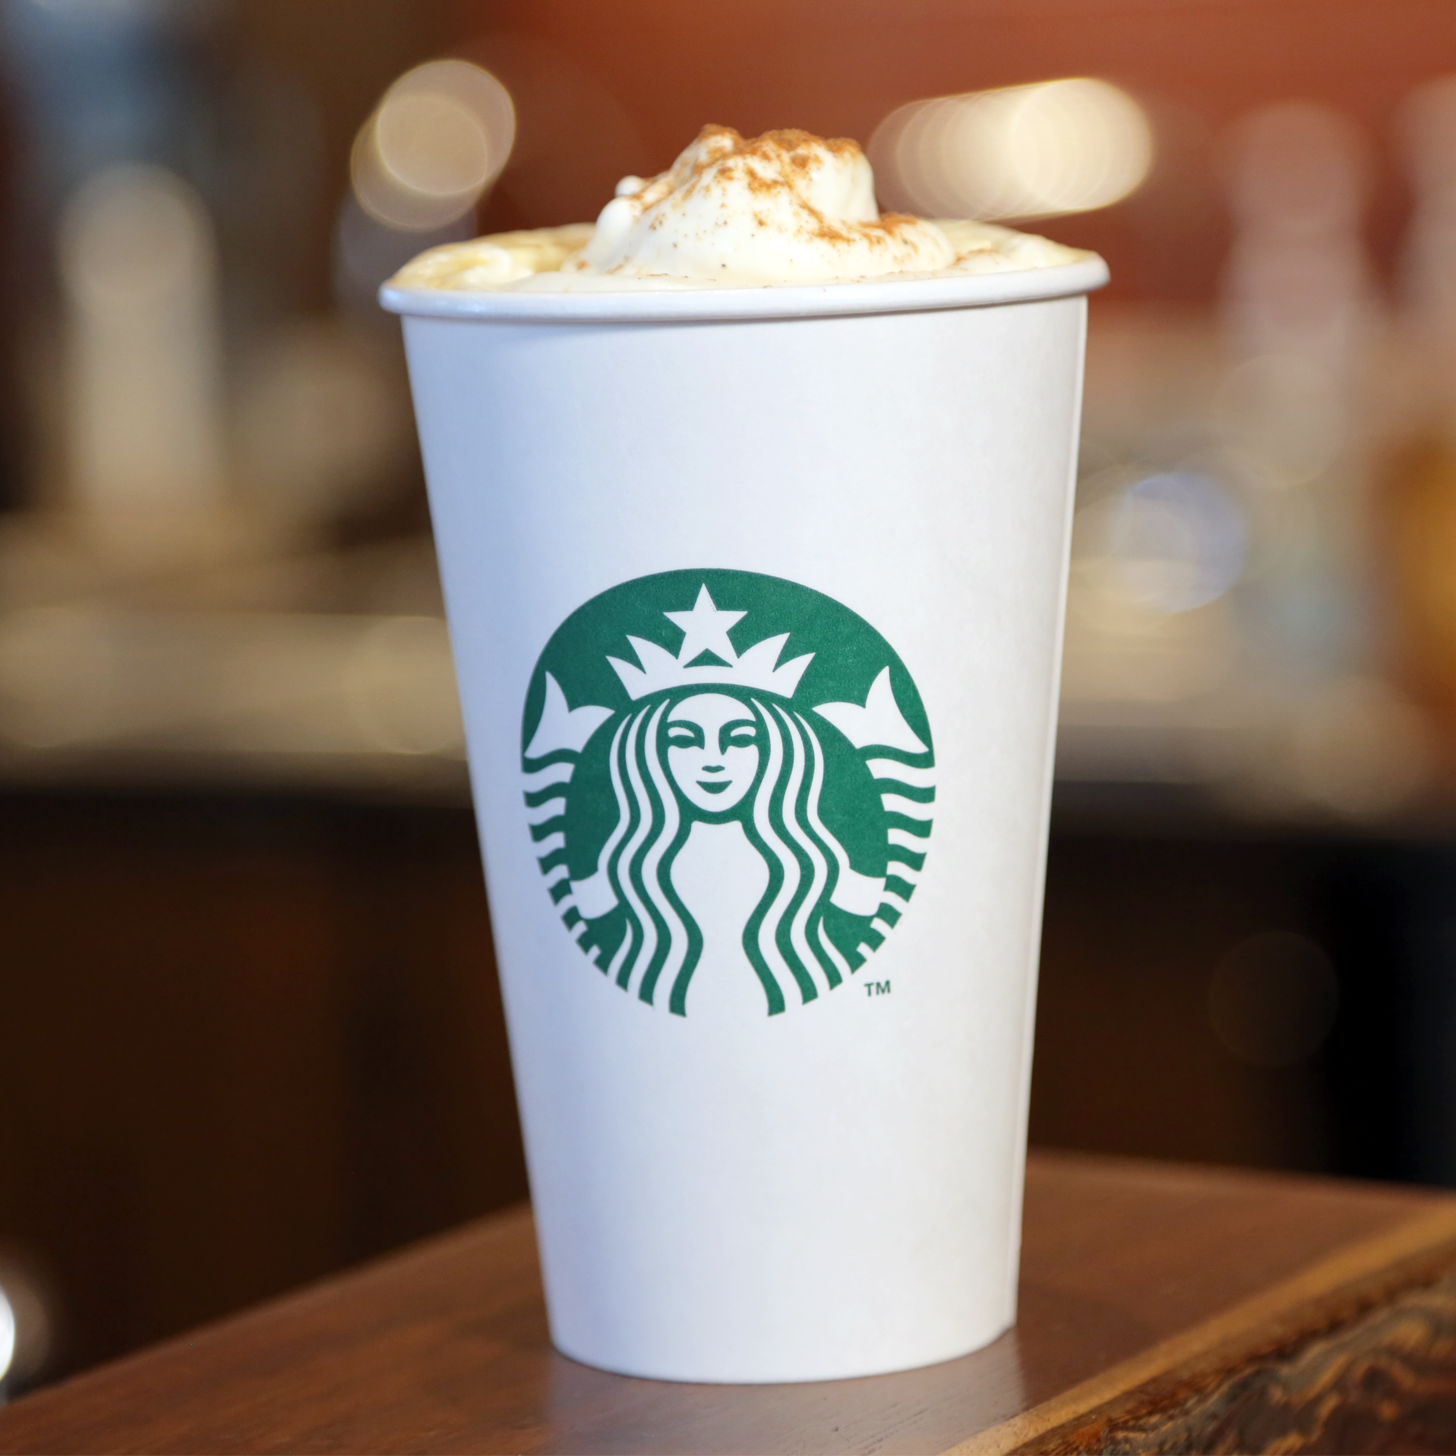 How to Make a Starbucks Pumpkin Spice Latte | POPSUGAR Food